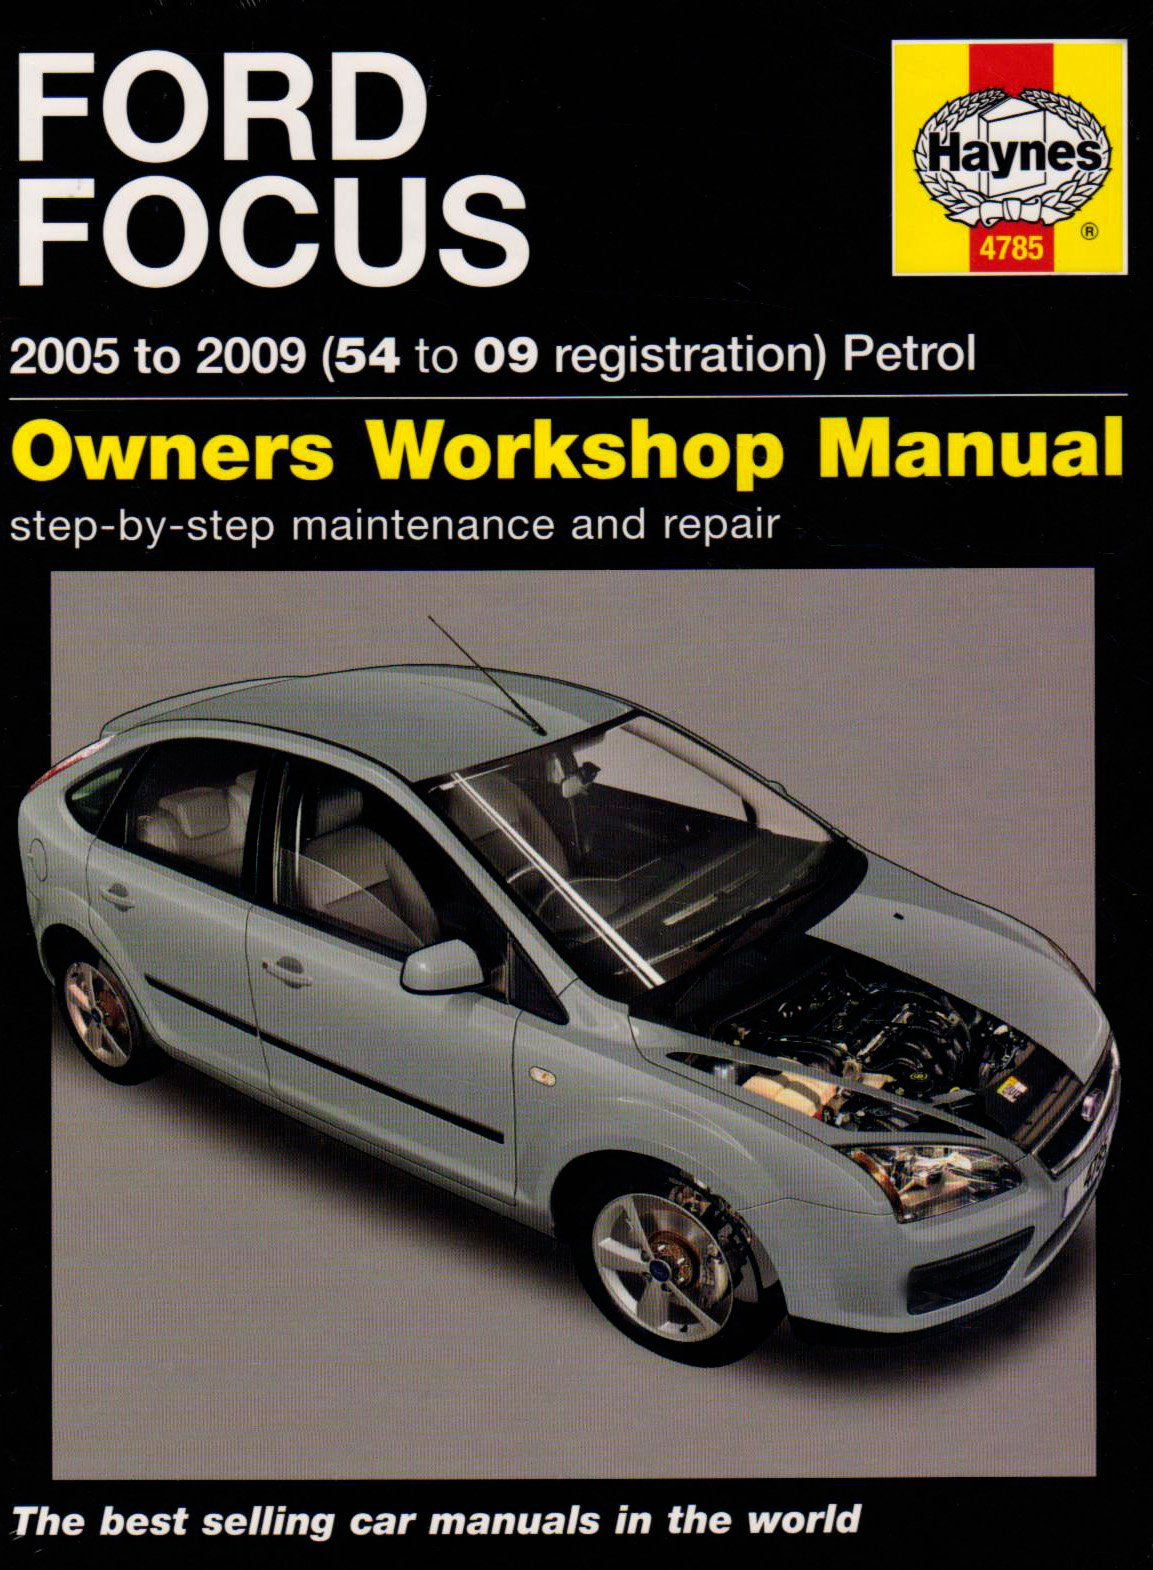 ford focus petrol 05 11 haynes repair manual amazon co uk anon rh amazon co uk 2007 Ford Focus Maintenance Schedule 2007 Ford Focus Owners Manual